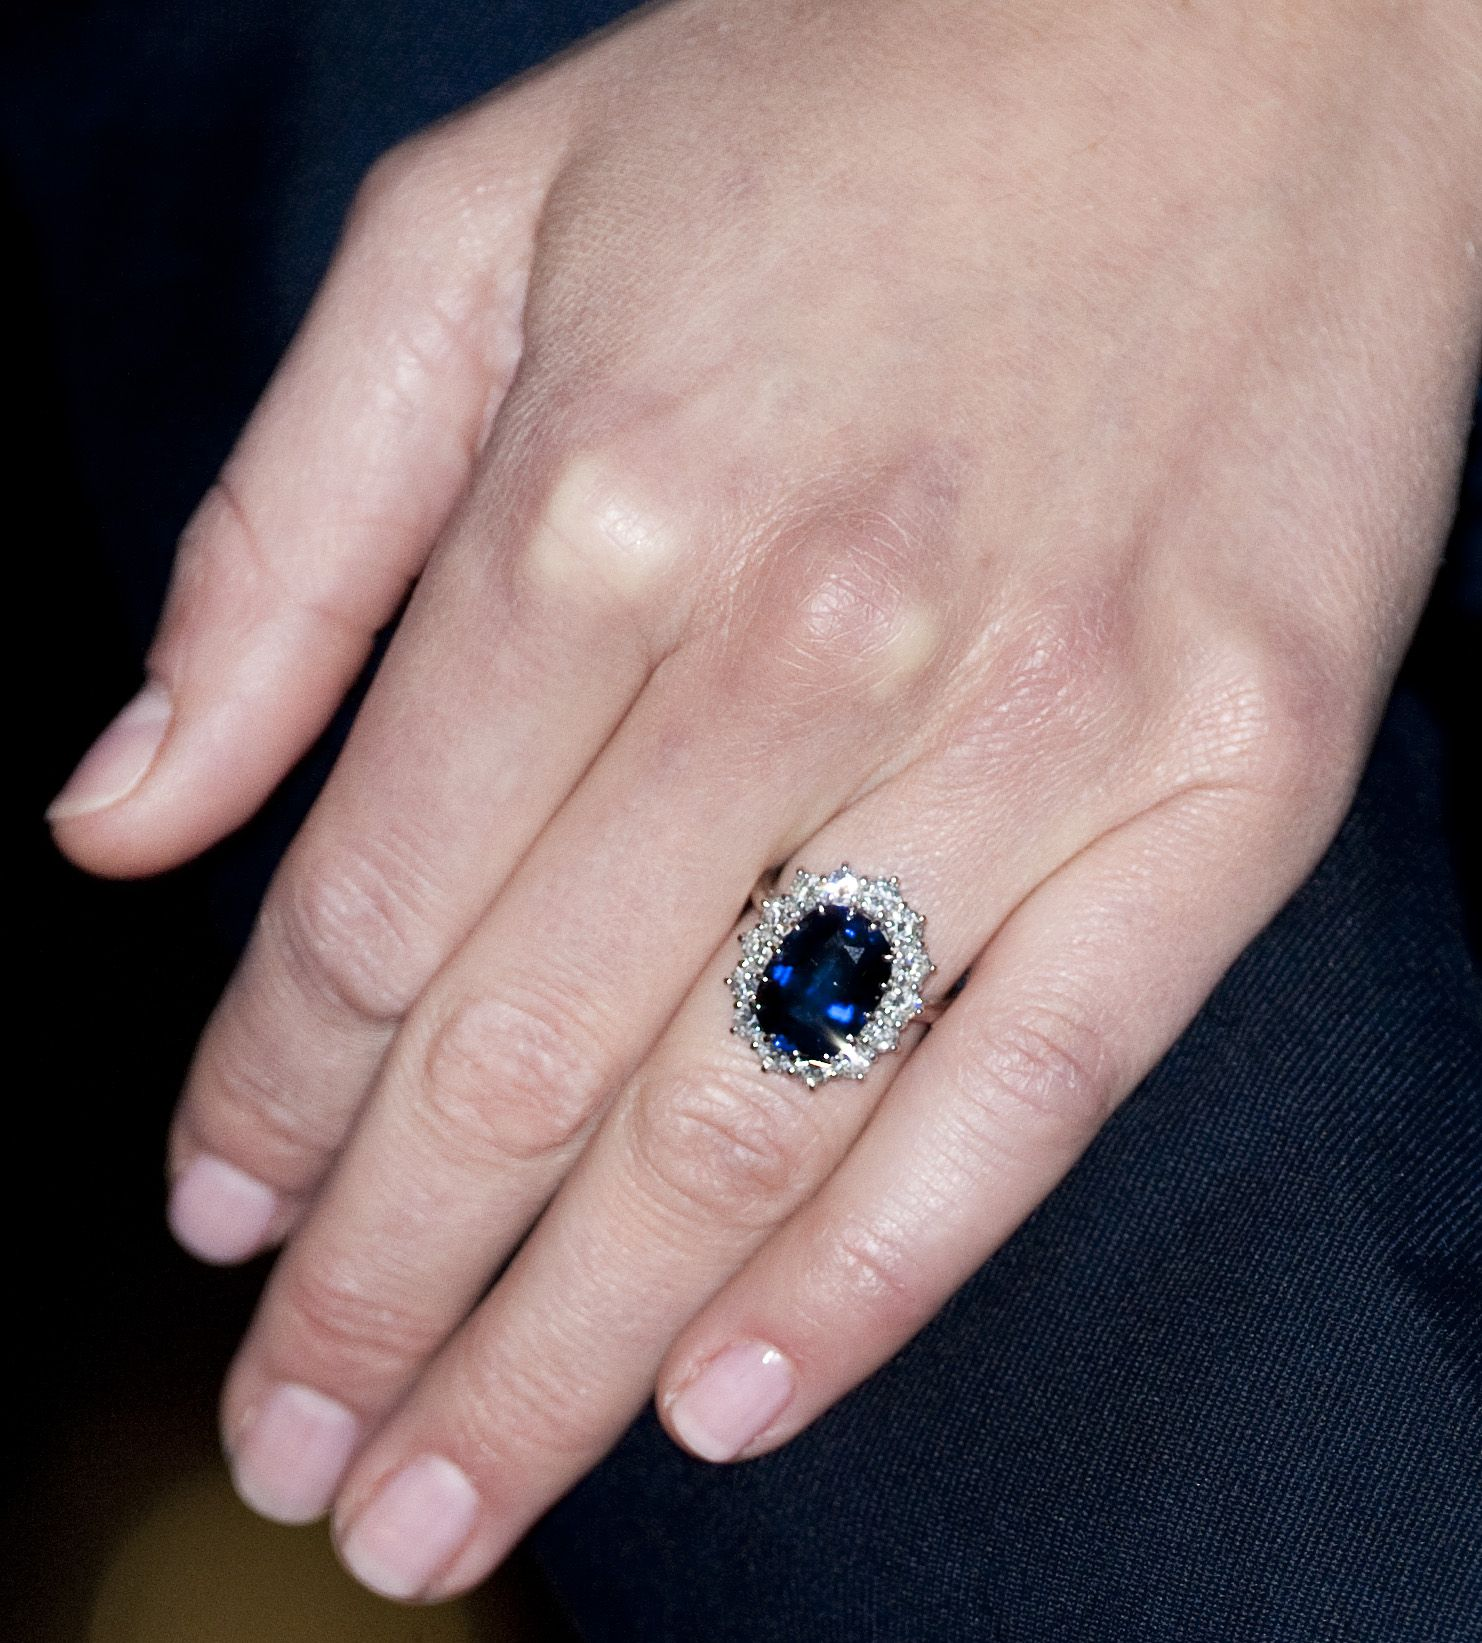 13 Of The Most Famous Jewels In The World